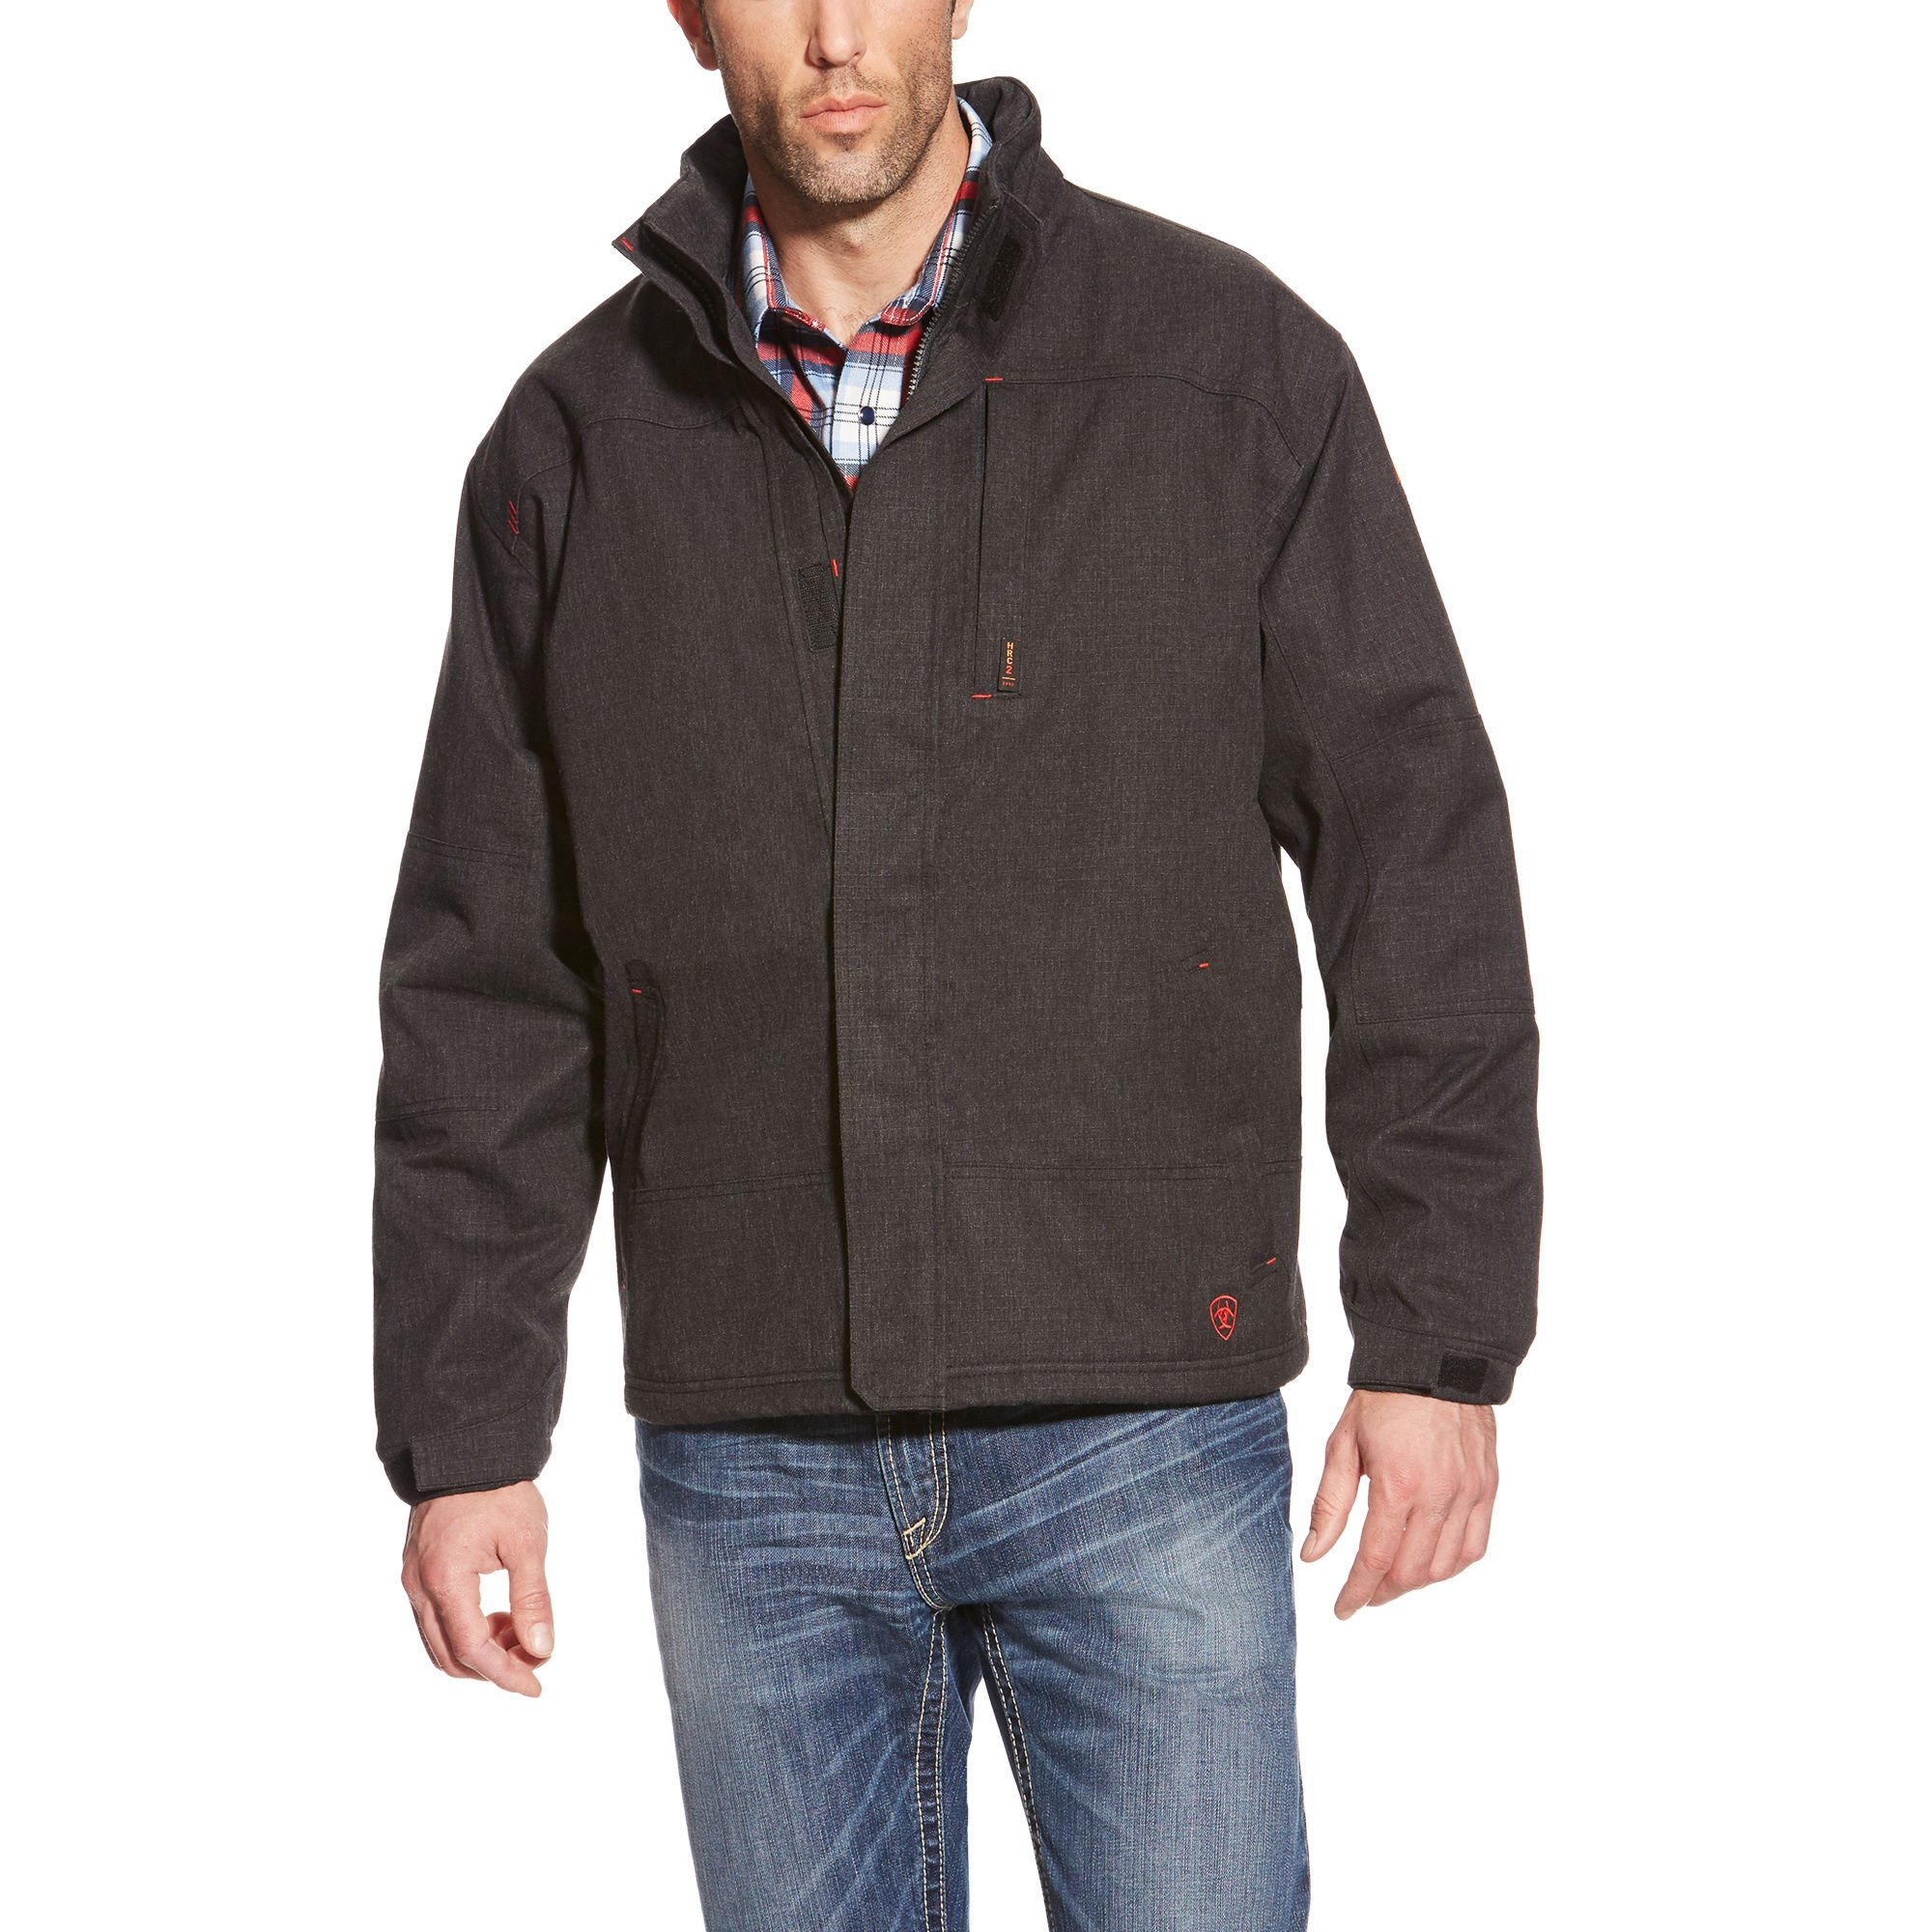 Ariat Men's Big and Tall Flame Resistant H2o Proof Jacket, Black, XXL